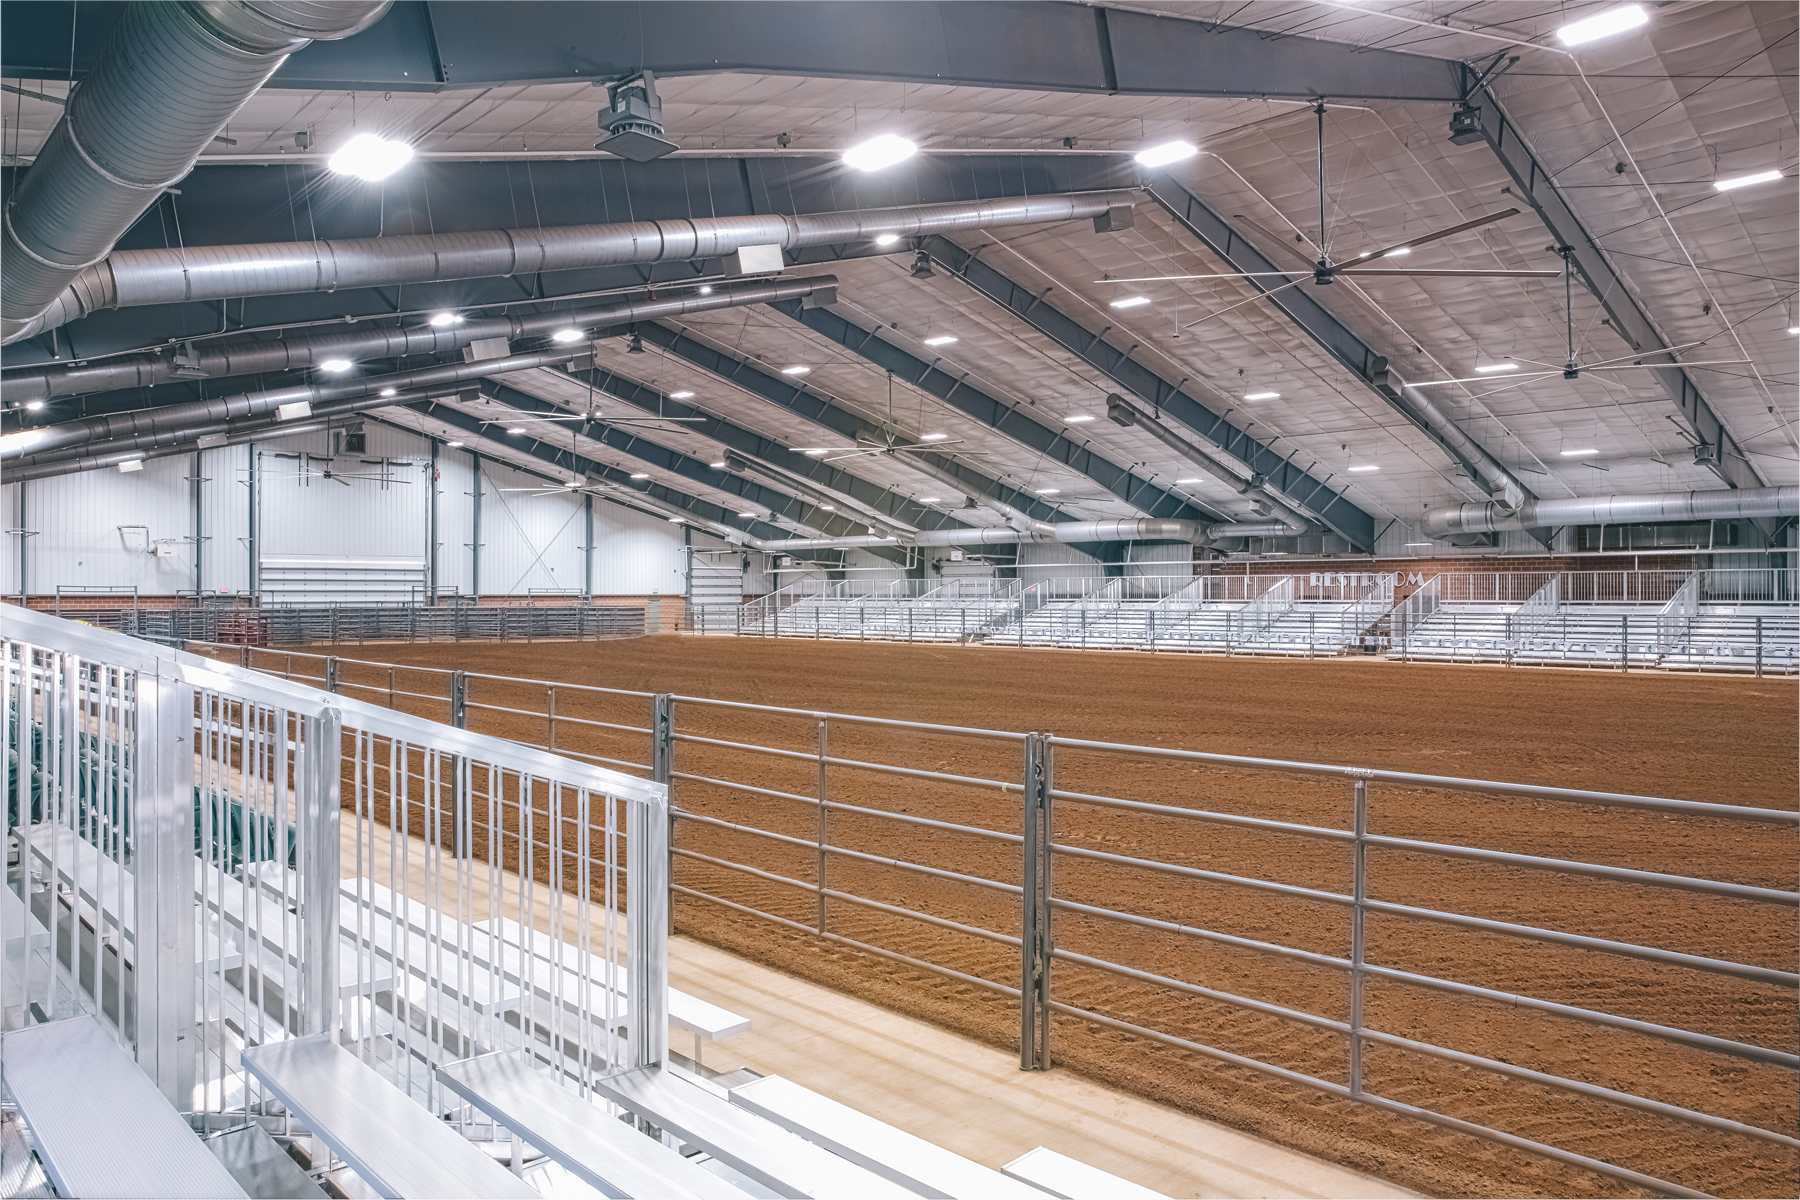 GradyFairgrounds_Interior_Arena1_4x6.jpg